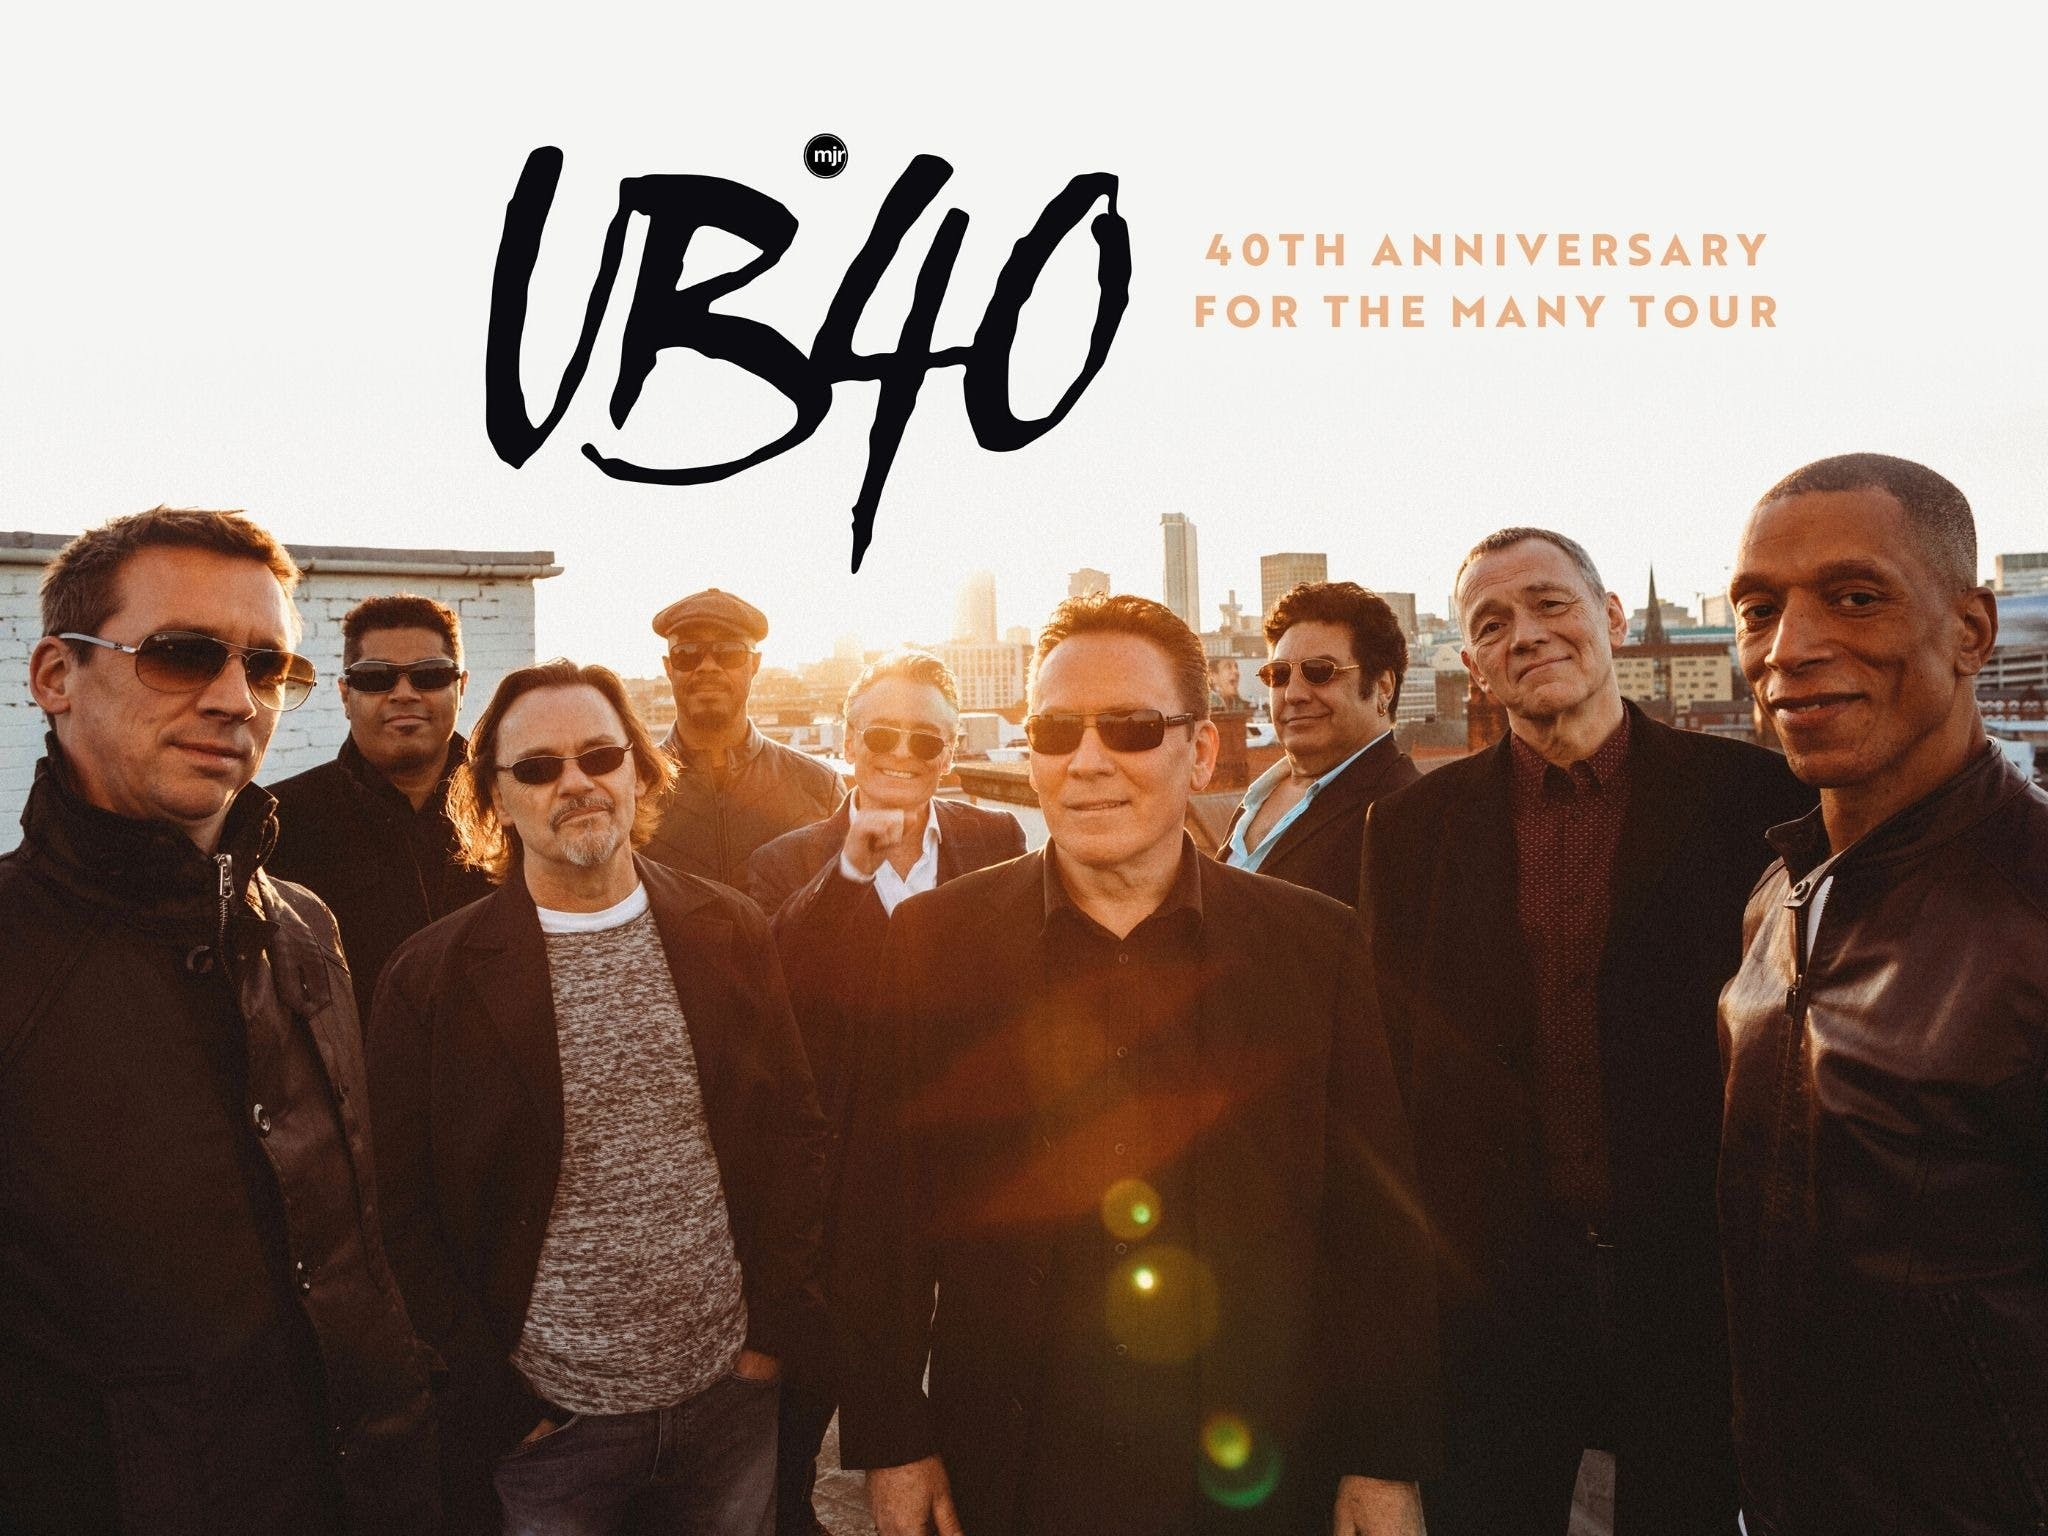 UB40 40th Anniversary Tour - Pubs and Clubs